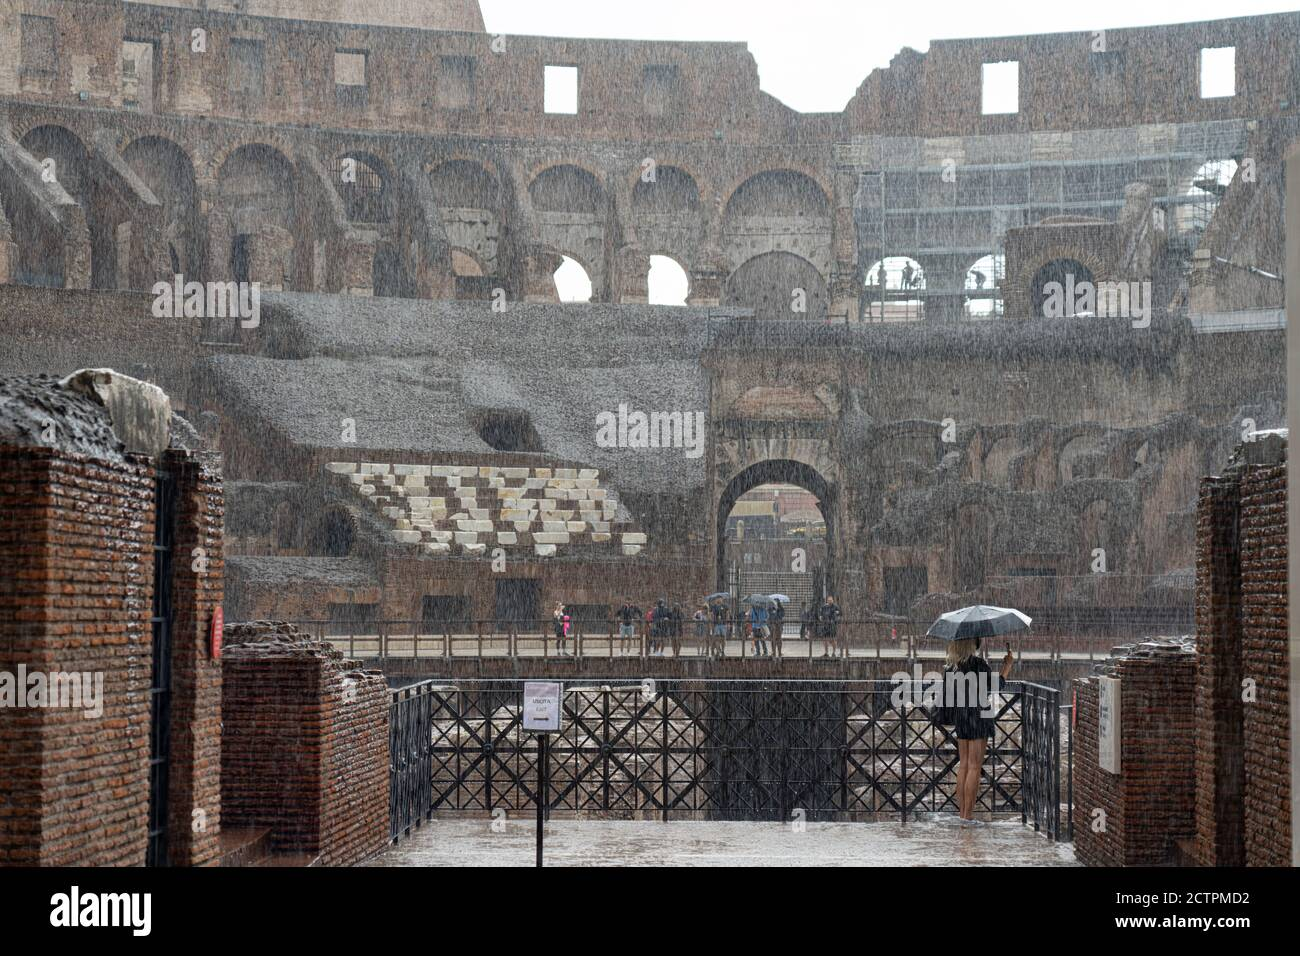 Rome, Italy. 24th September, 2020. Italy Weather: A woman shelters from heavy rain under an umbrella in the Roman Colloseum in Rome, Italy. Photo: Roger Garfield/Alamy Live News Stock Photo